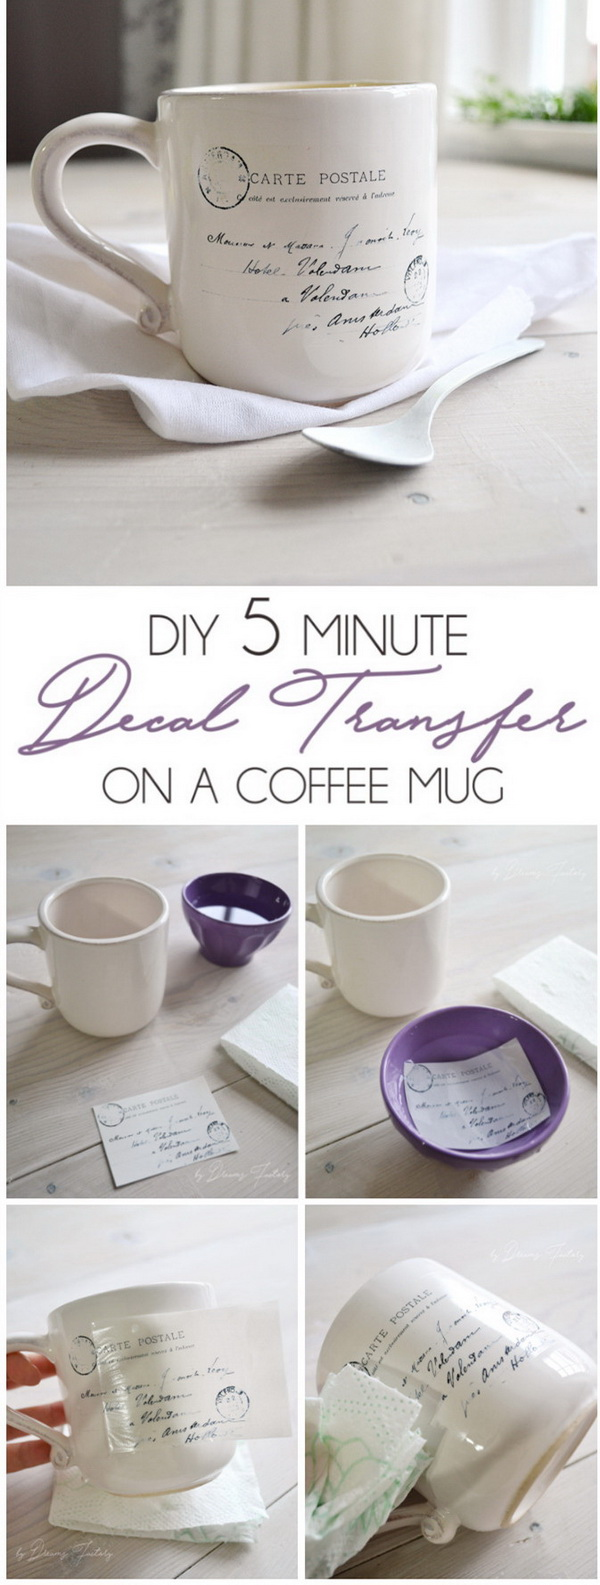 DIY 5 Minute Decal Transfer On A Coffee Mug.